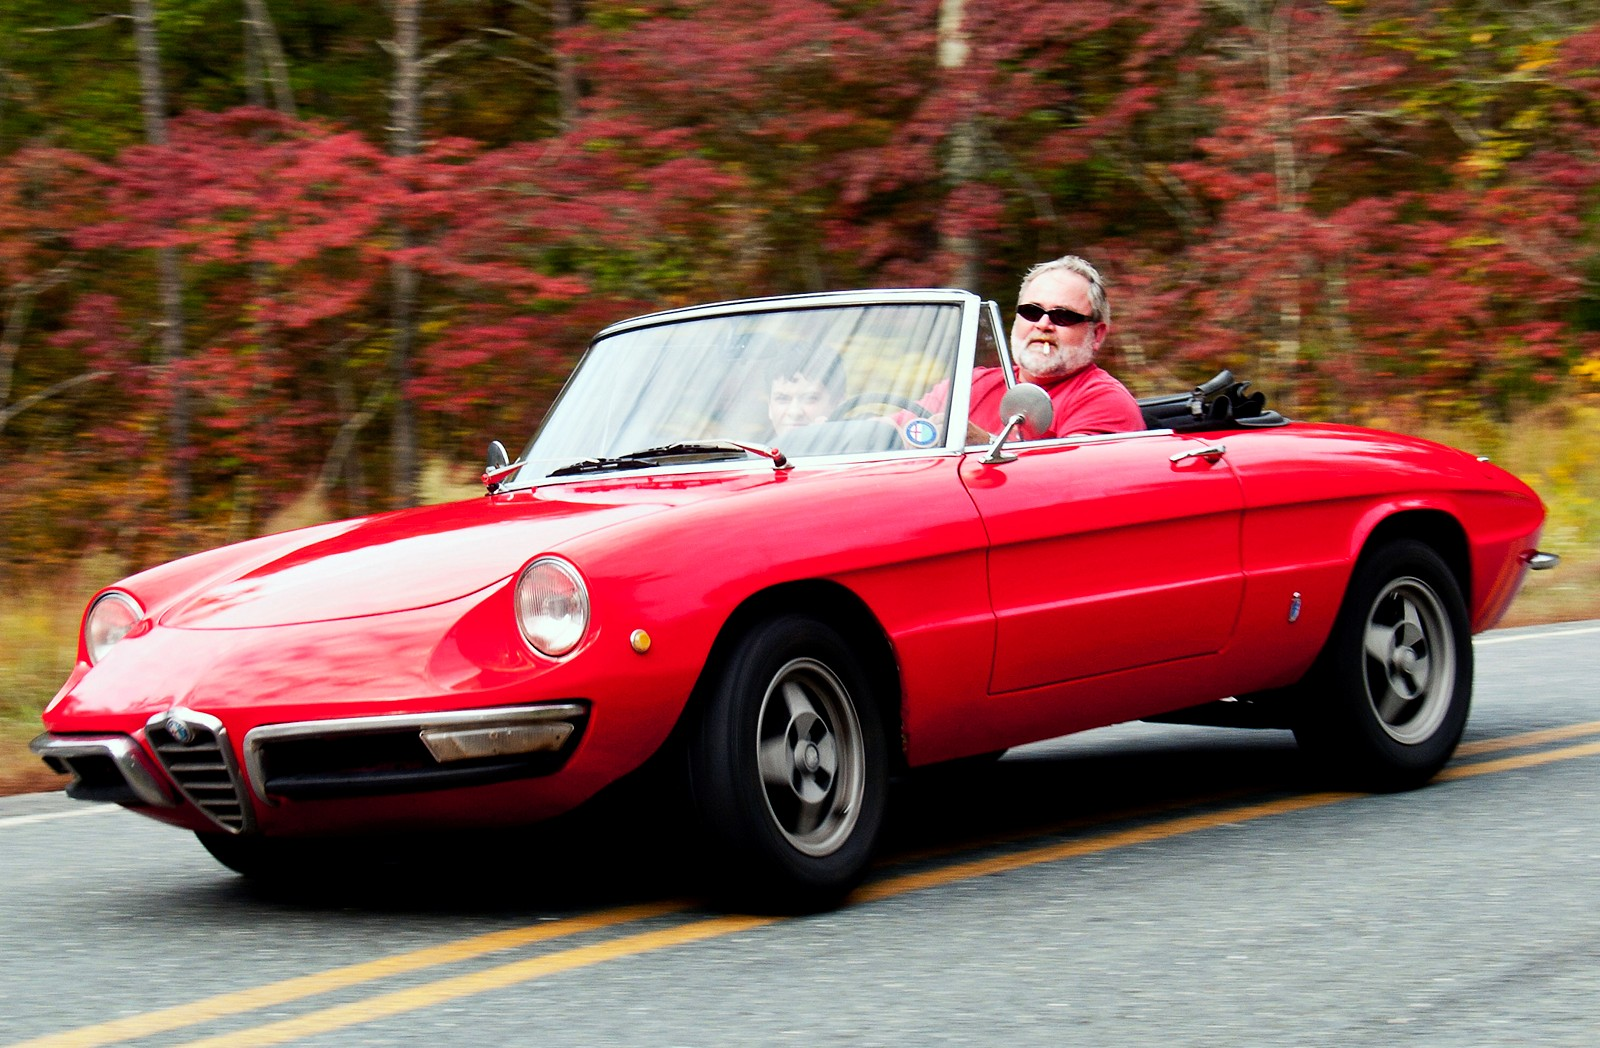 1968 Alfa Romeo Spider Rmation And Photos Momentcar HD Wallpapers Download free images and photos [musssic.tk]